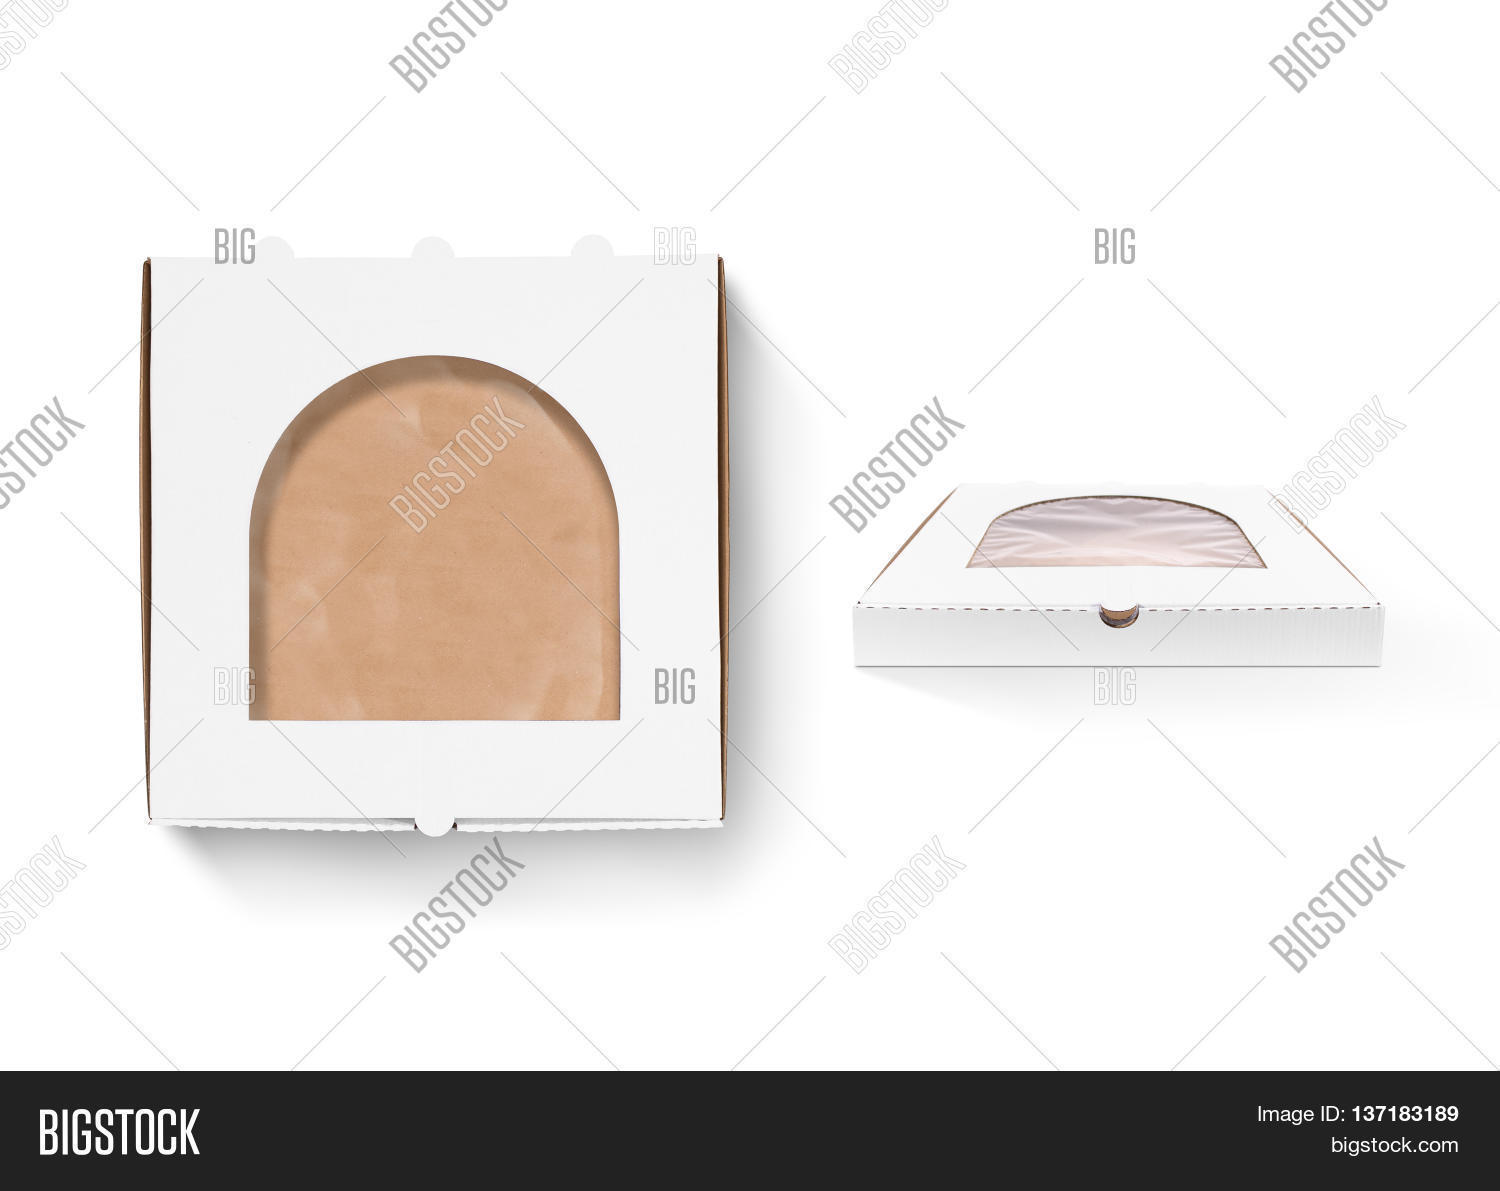 Pizza box design mock up with foil window isolated. Carton packaging box clear mockup.  sc 1 st  Bigstock & Pizza Box Design Mock Image u0026 Photo (Free Trial) | Bigstock